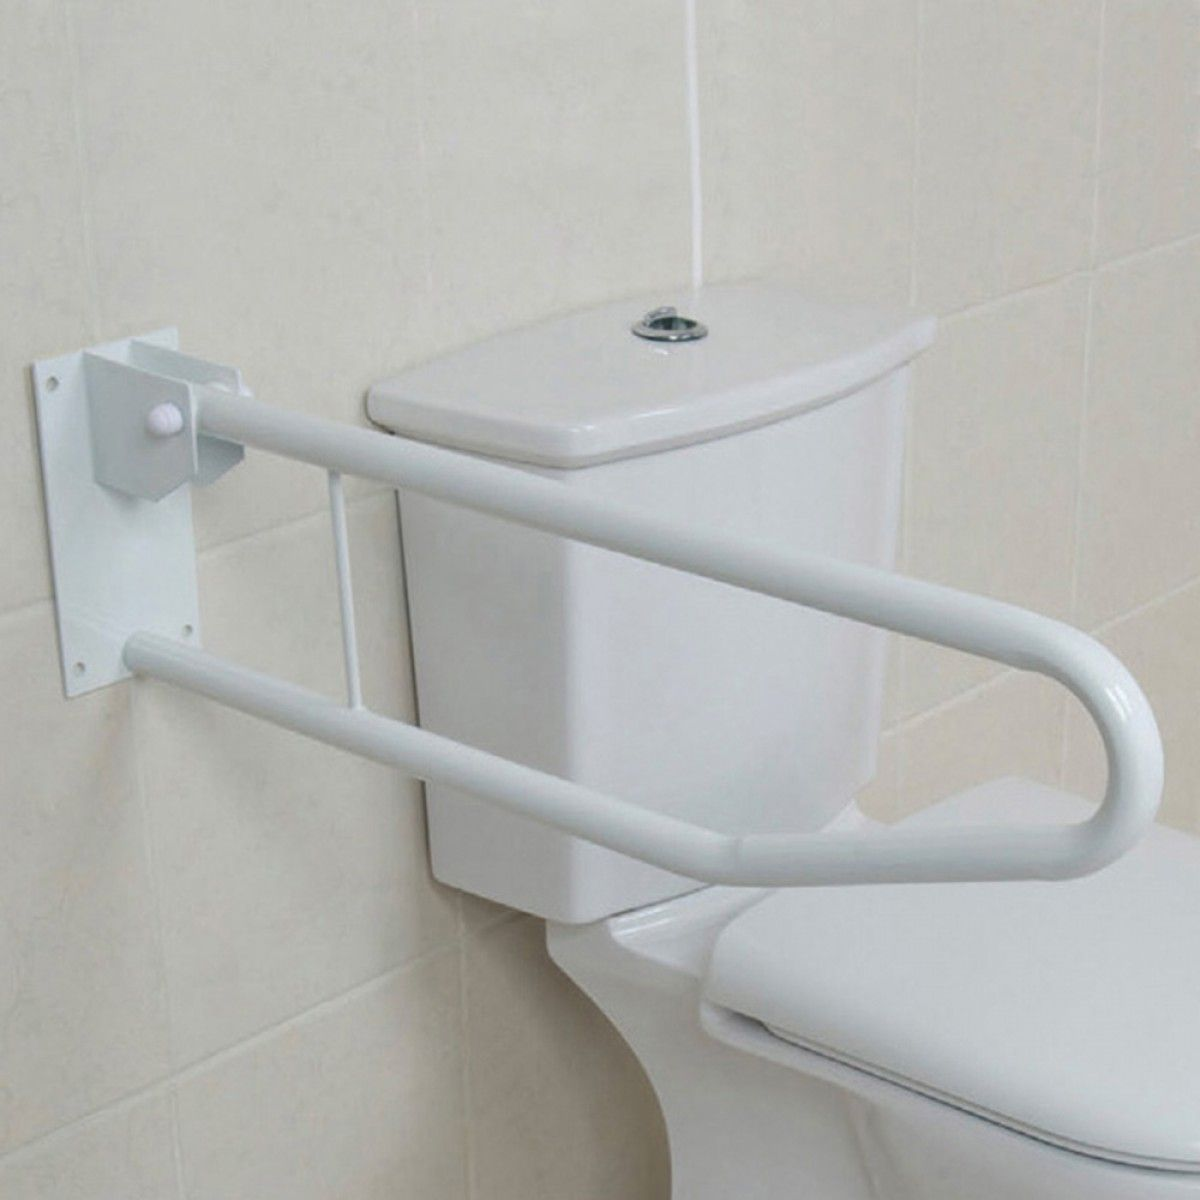 Pin by on toilet safety rails grab - Handicap bars for bathroom toilet ...